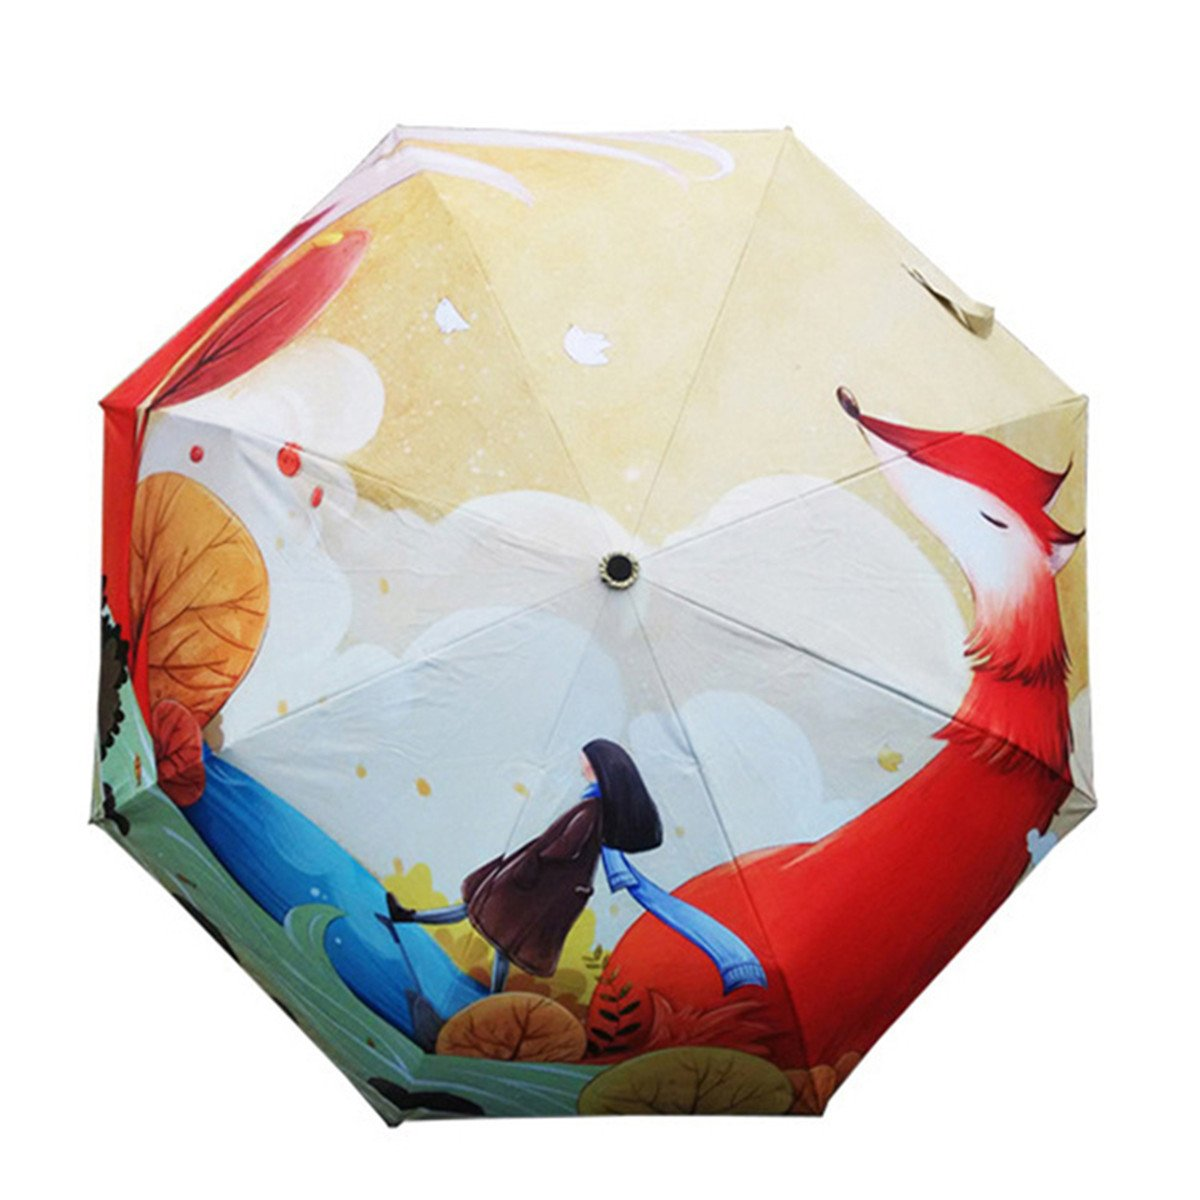 Ruick Artistic Umbrella Light-weighted Folding Umbrella with Anti-UV and Windproof Funtions Suitable for Both Sunny and Raining Days- Available In 5 Patterns (Fox)